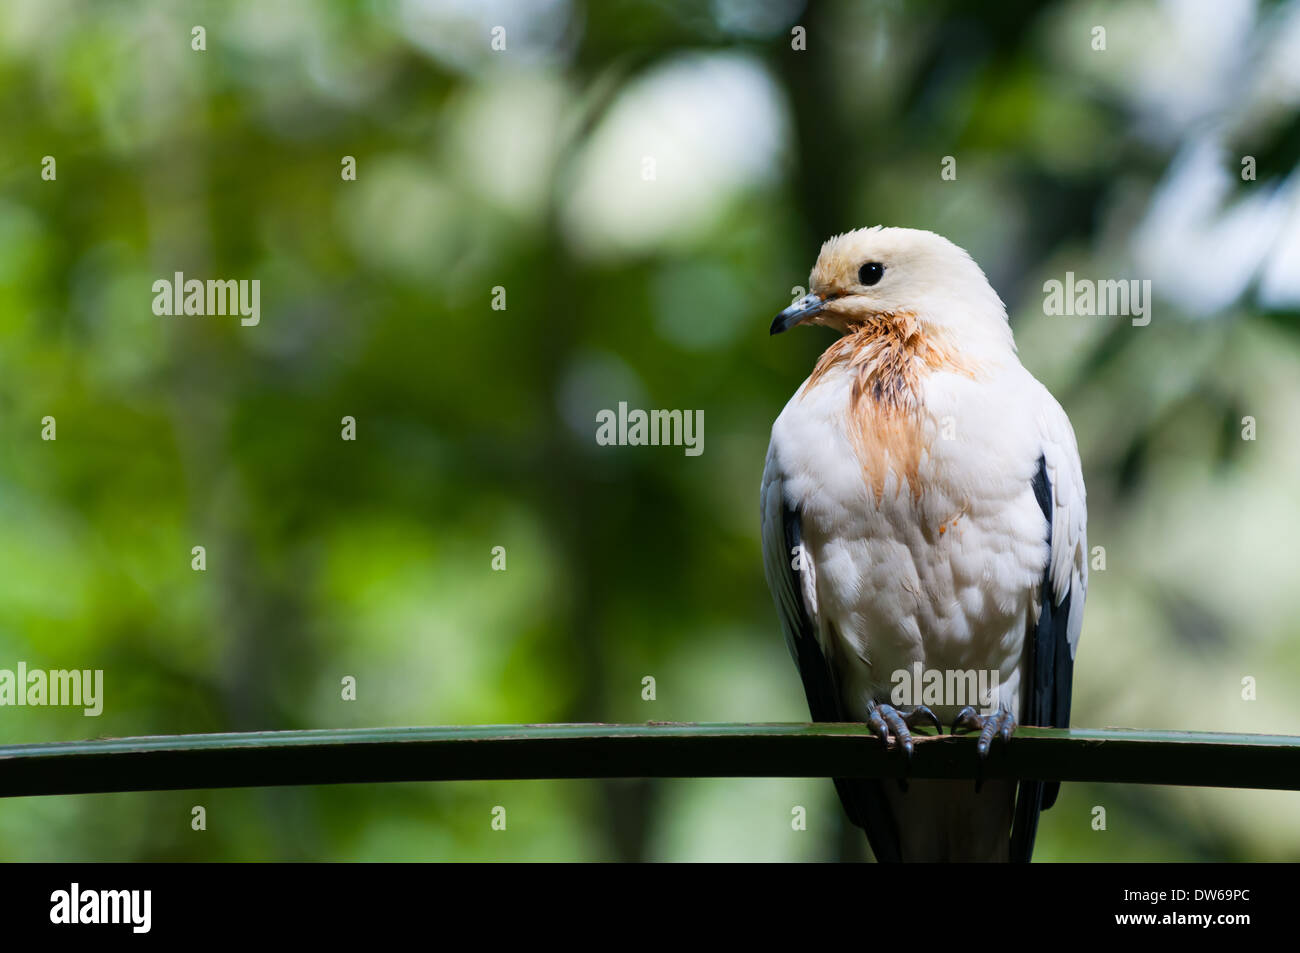 A pied imperial pigeon (ducula bicolor) at the Jurong Bird Park in Singapore. Stock Photo